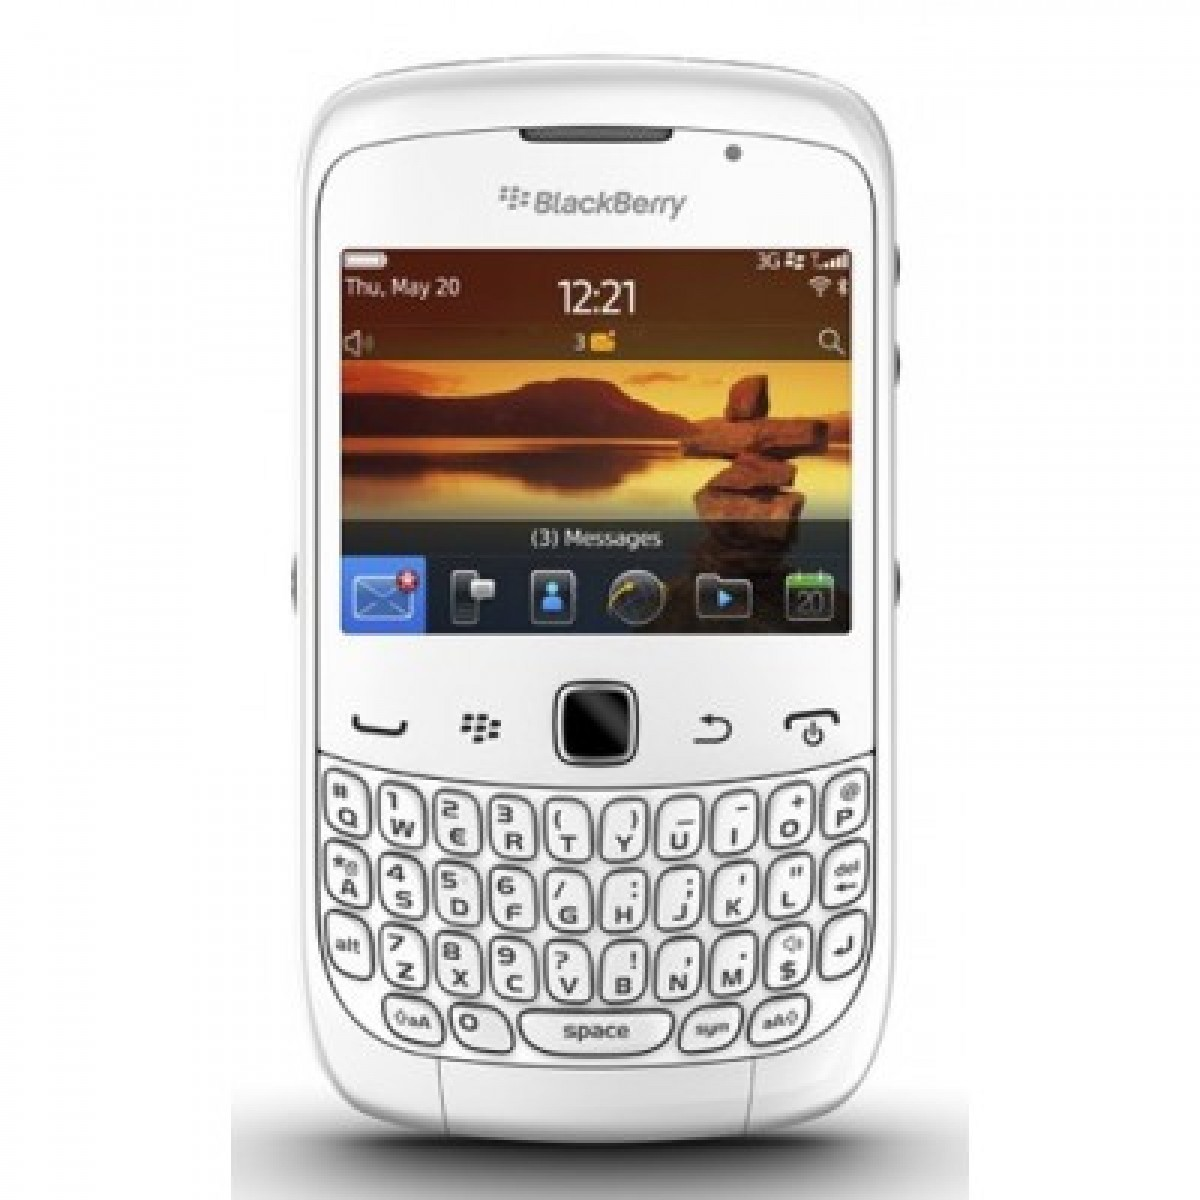 Moviles Libres Blackberry Blackberry Movil 9300 Curve Blanca Compra En Euronics Es